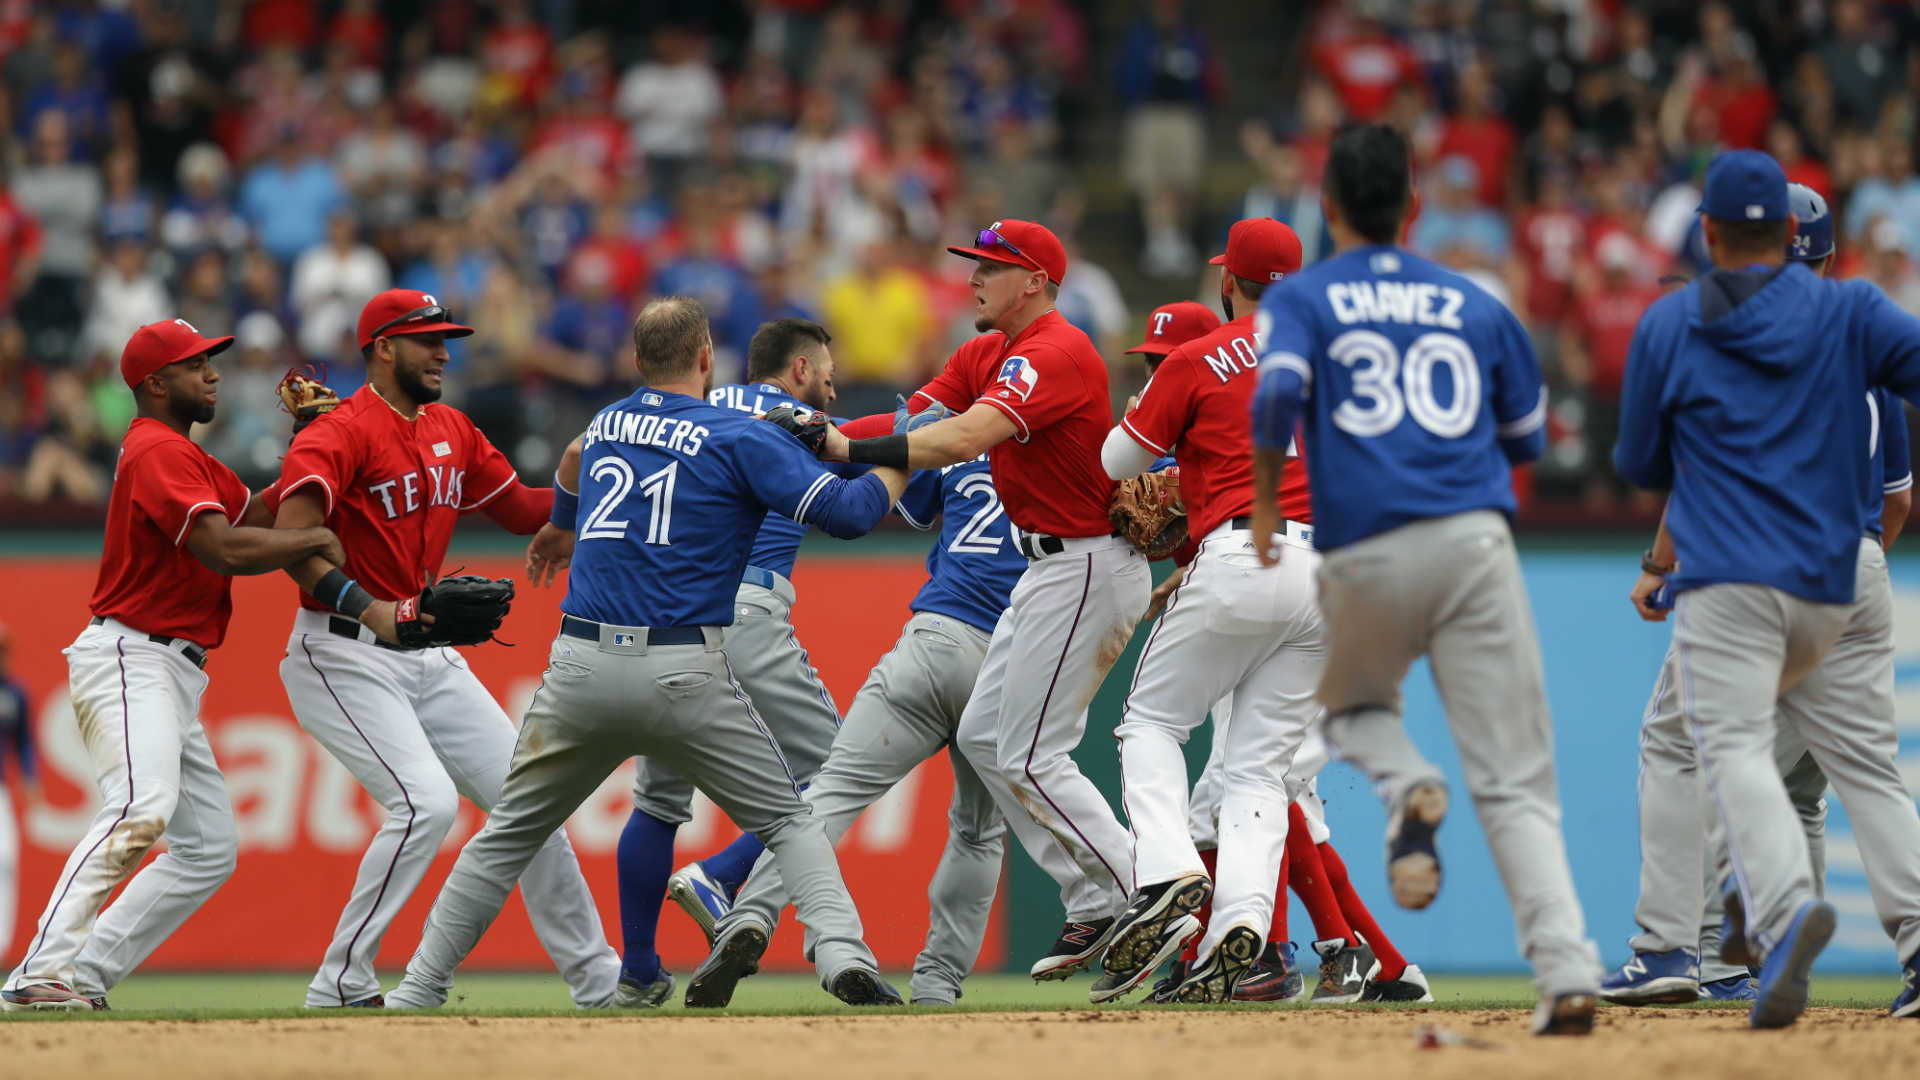 rougned odor suspended eight games for punching jose bautista, reports say